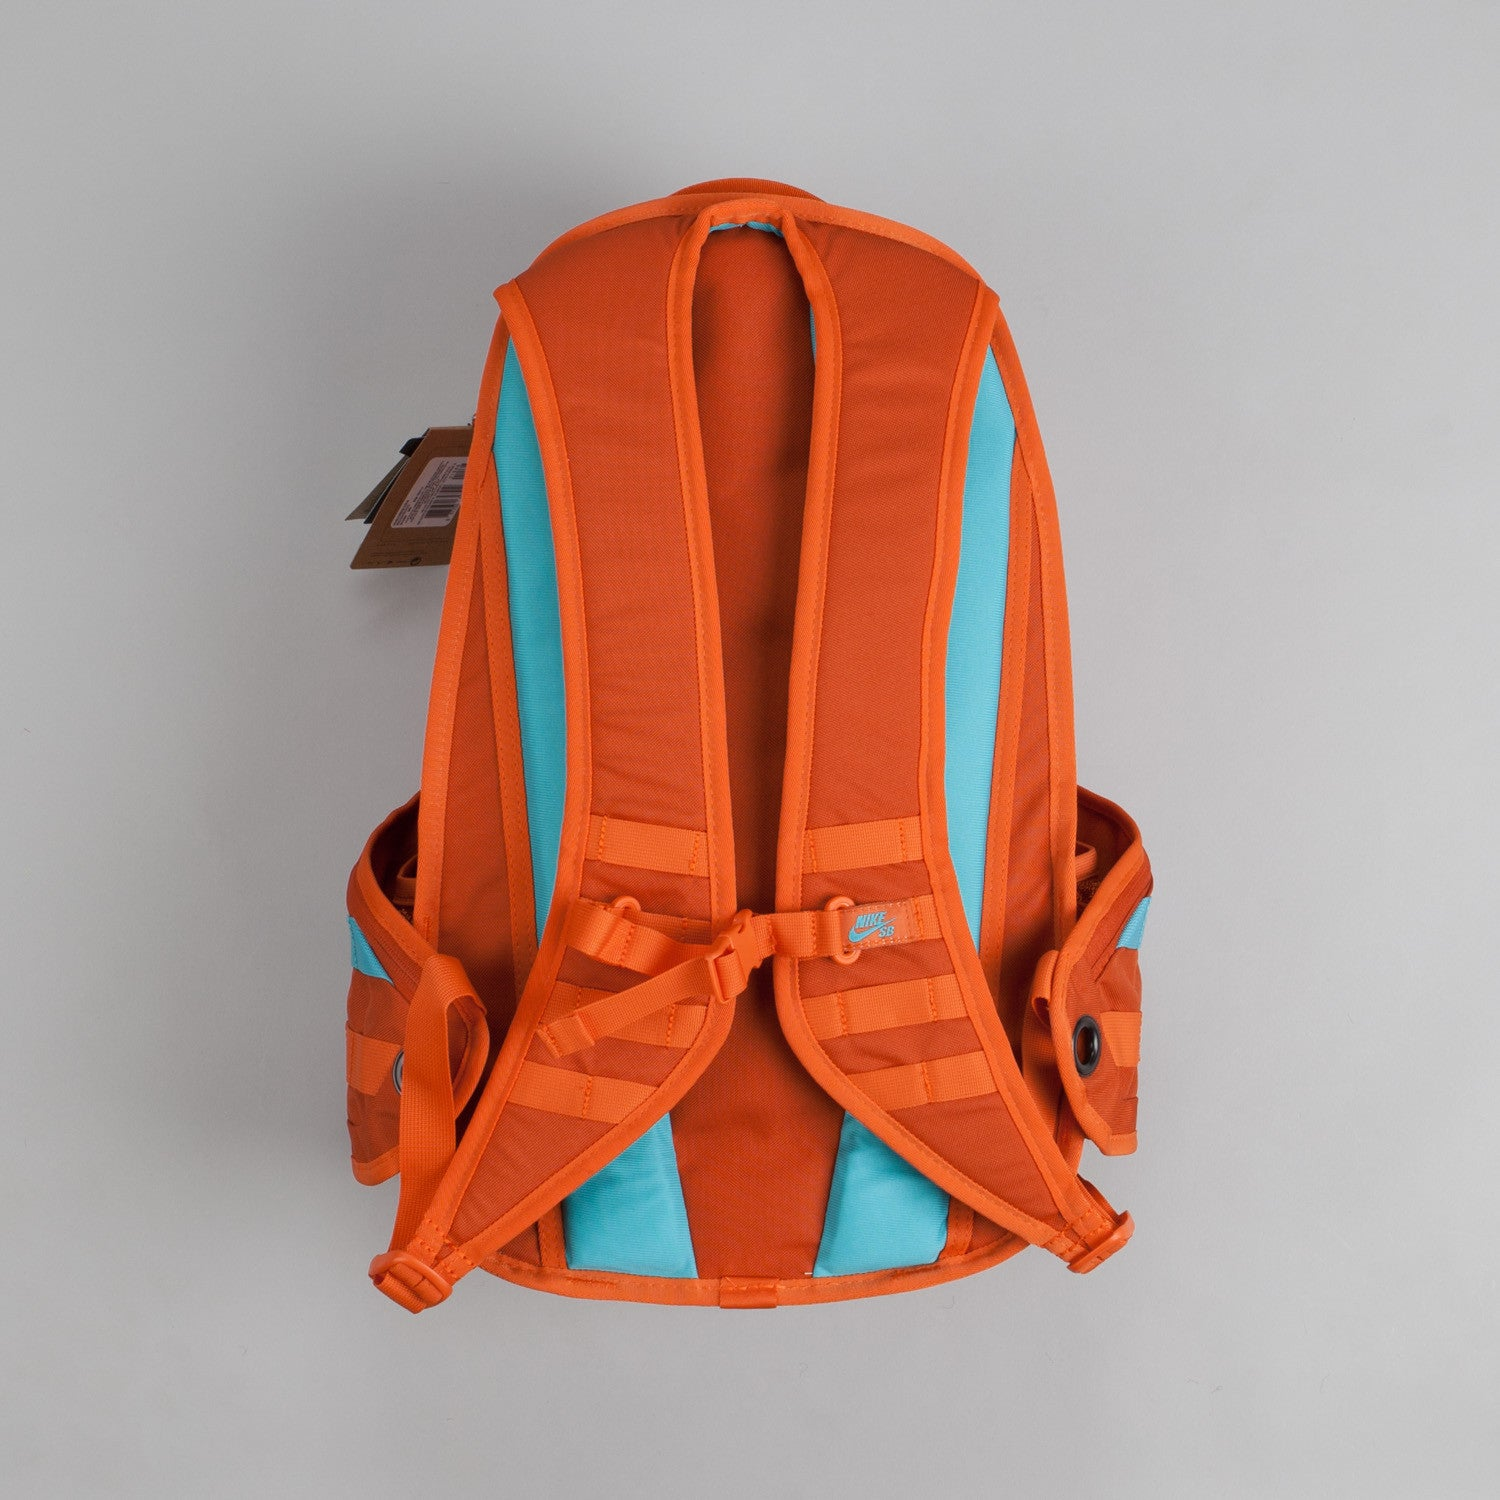 Nike SB RPM Backpack - Team Orange / Dusty Cactus